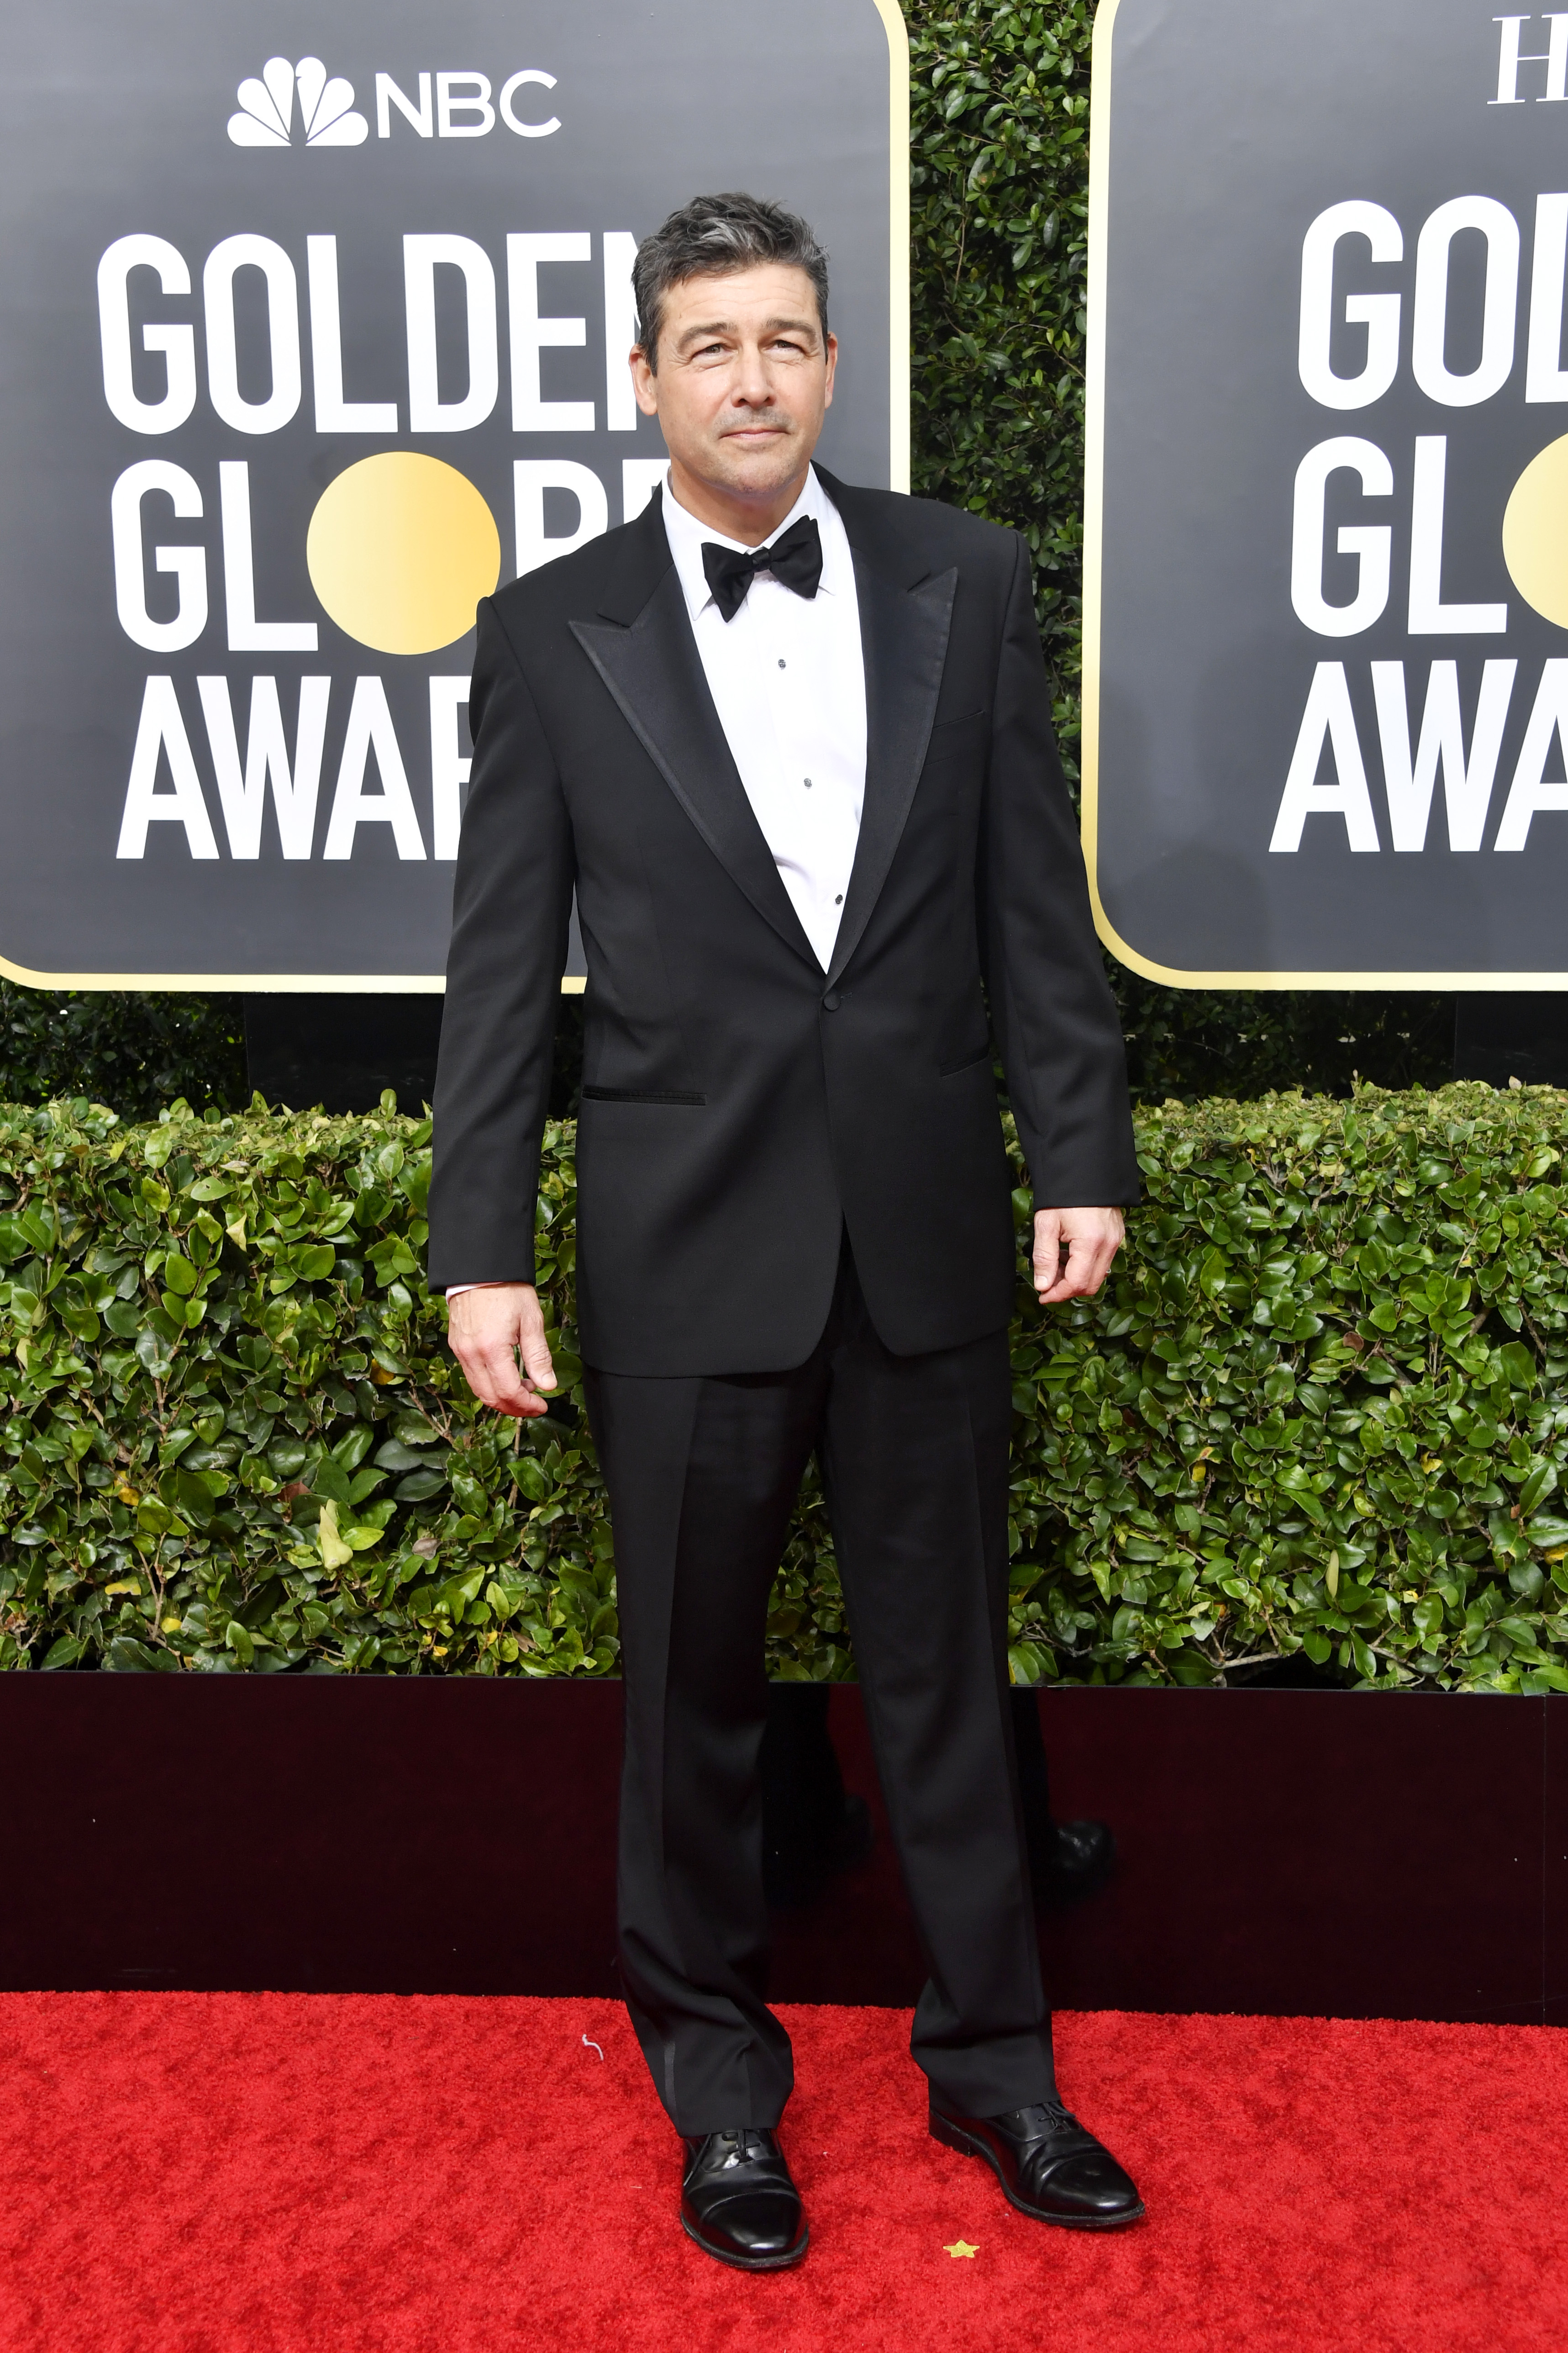 BEVERLY HILLS, CALIFORNIA - JANUARY 05: Kyle Chandler attends the 77th Annual Golden Globe Awards at The Beverly Hilton Hotel on January 05, 2020 in Beverly Hills, California. (Photo by Frazer Harrison/Getty Images)